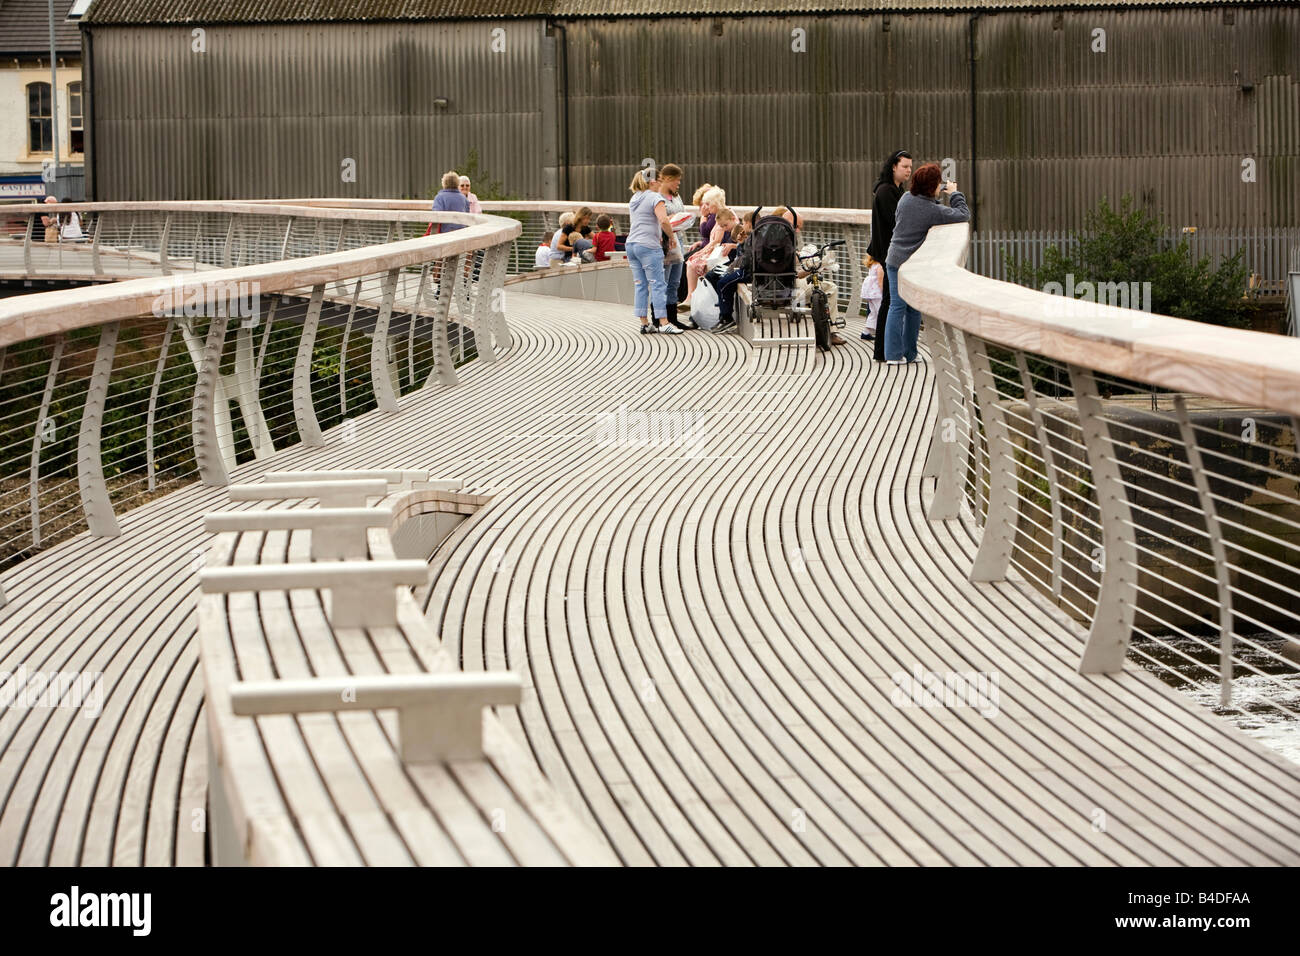 UK Yorkshire Castleford Grand Designs Big Town Plan new footbridge over River Aire Stock Photo